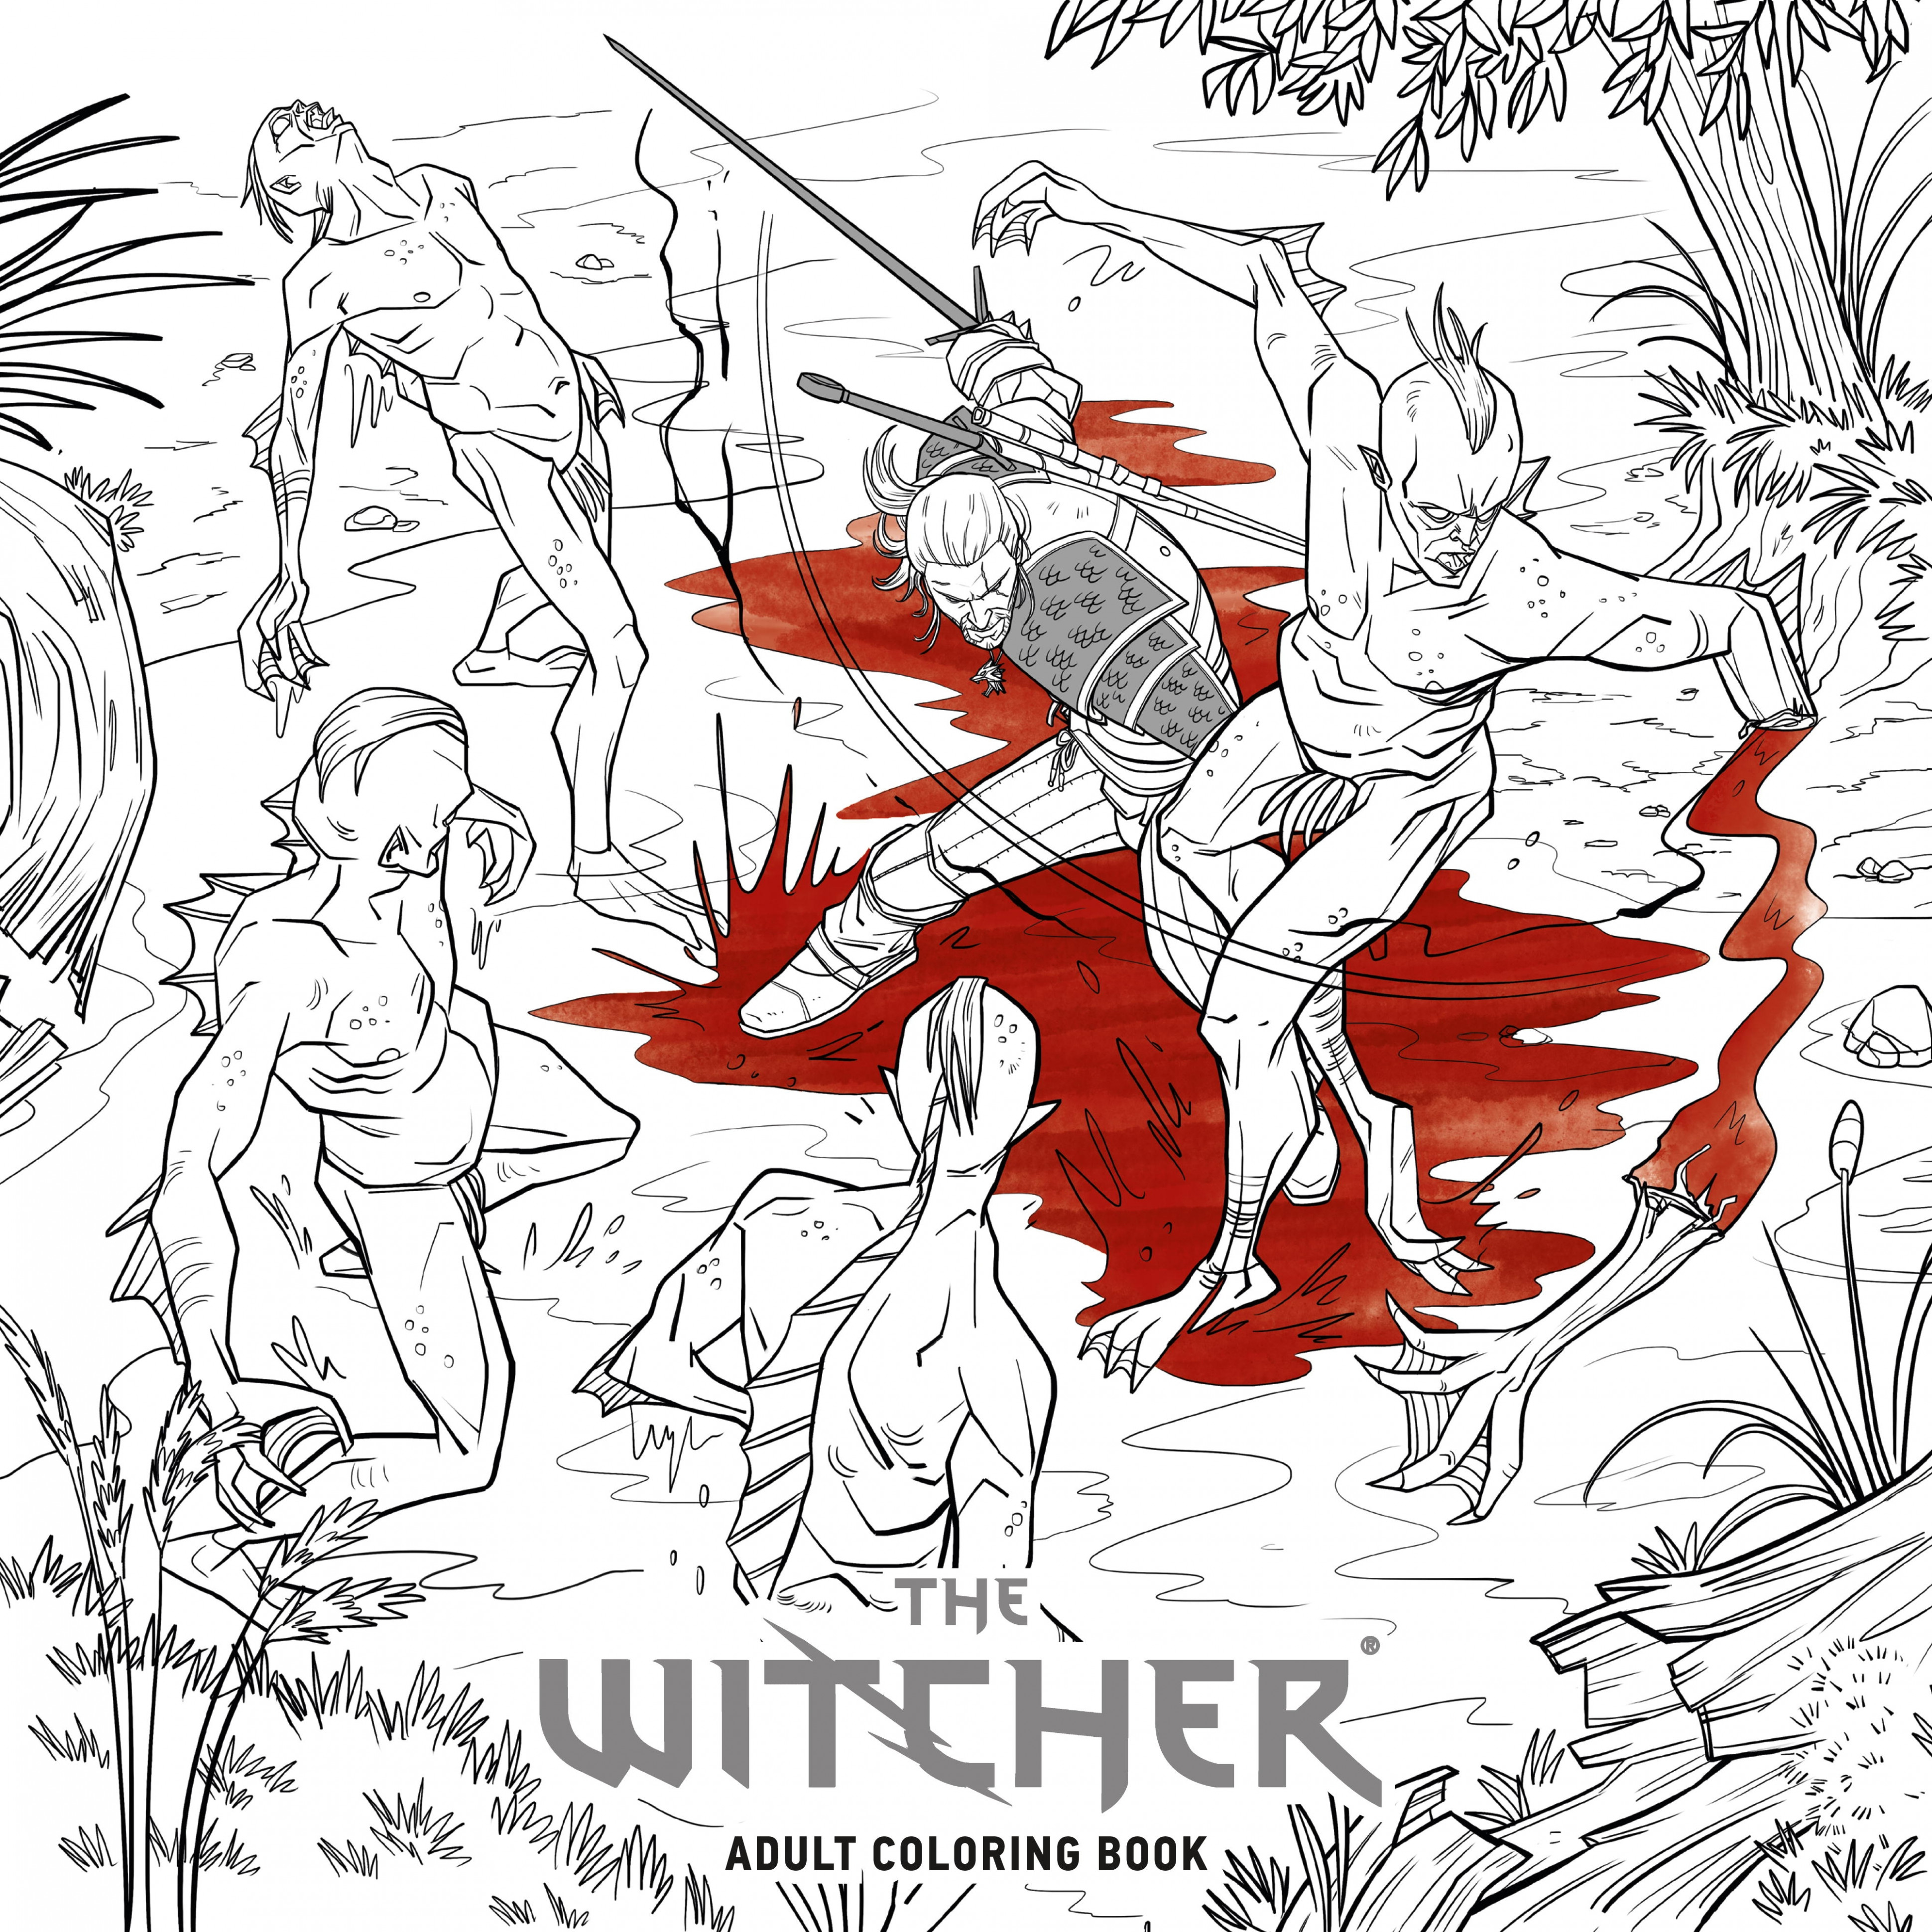 The Witcher Adult Coloring Book by CD PROJEKT RED - Penguin Books ...